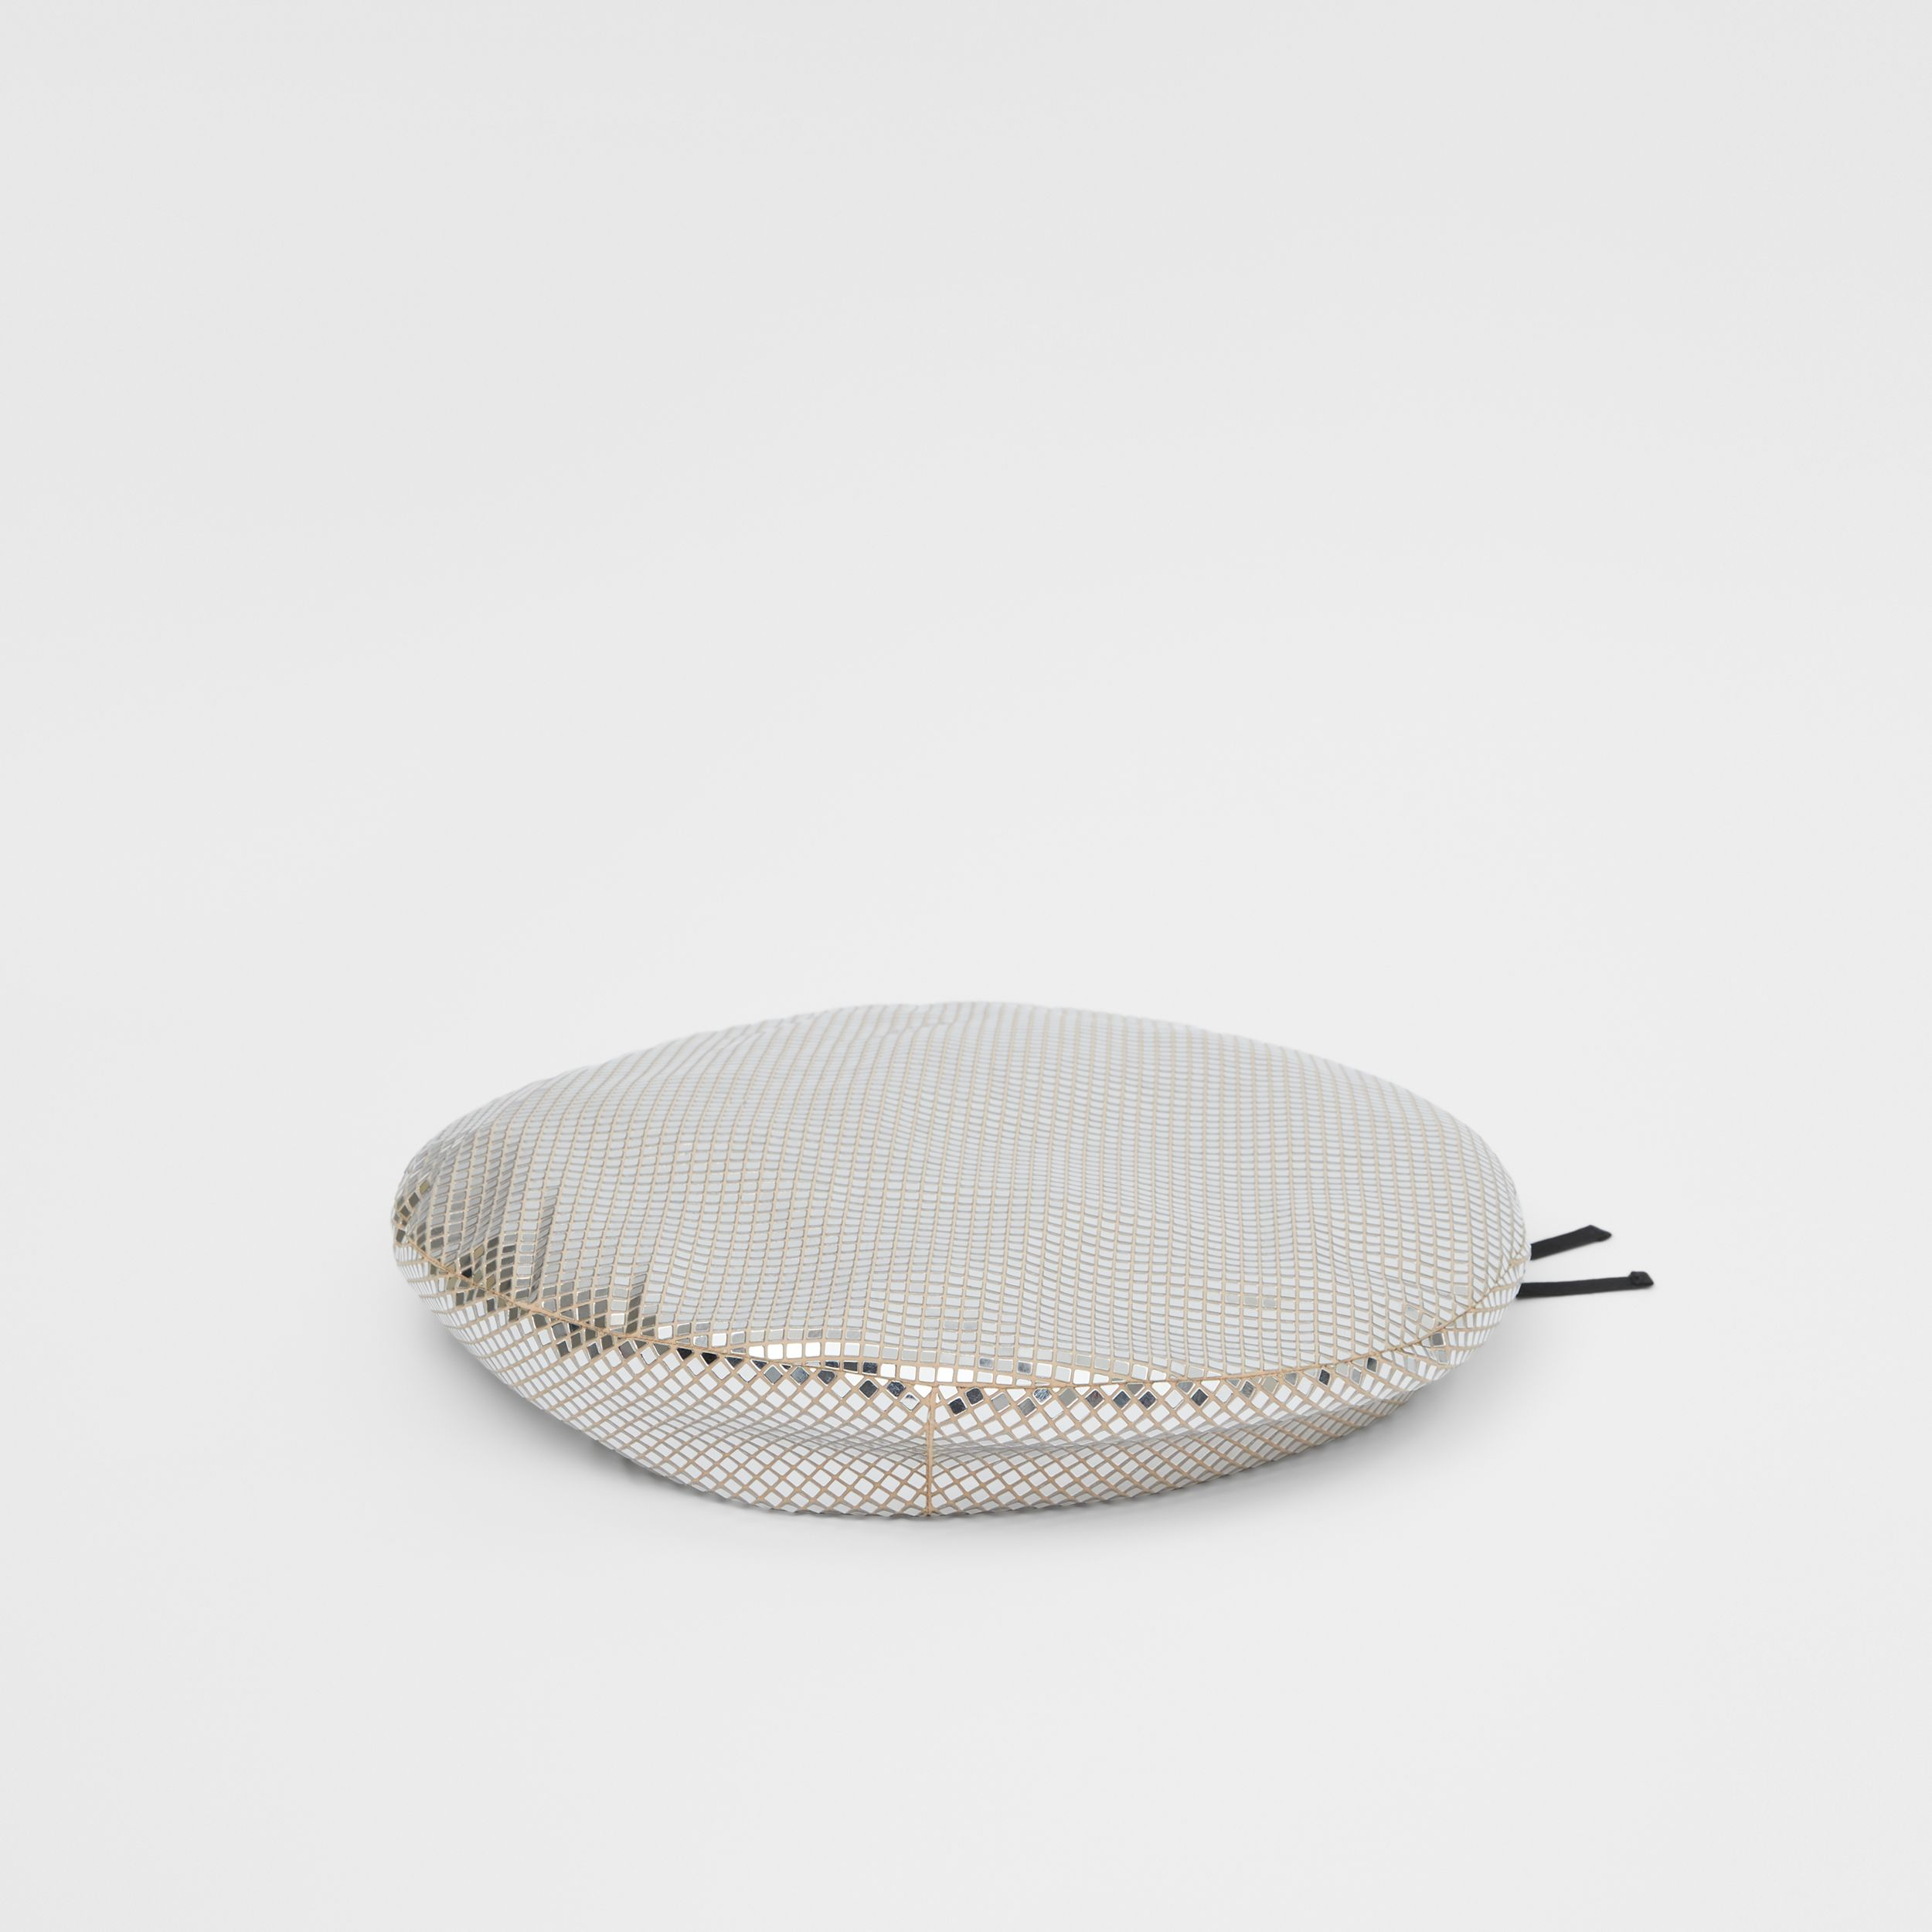 Mirrored Stretch Jersey Oversized Beret in Silver | Burberry - 1